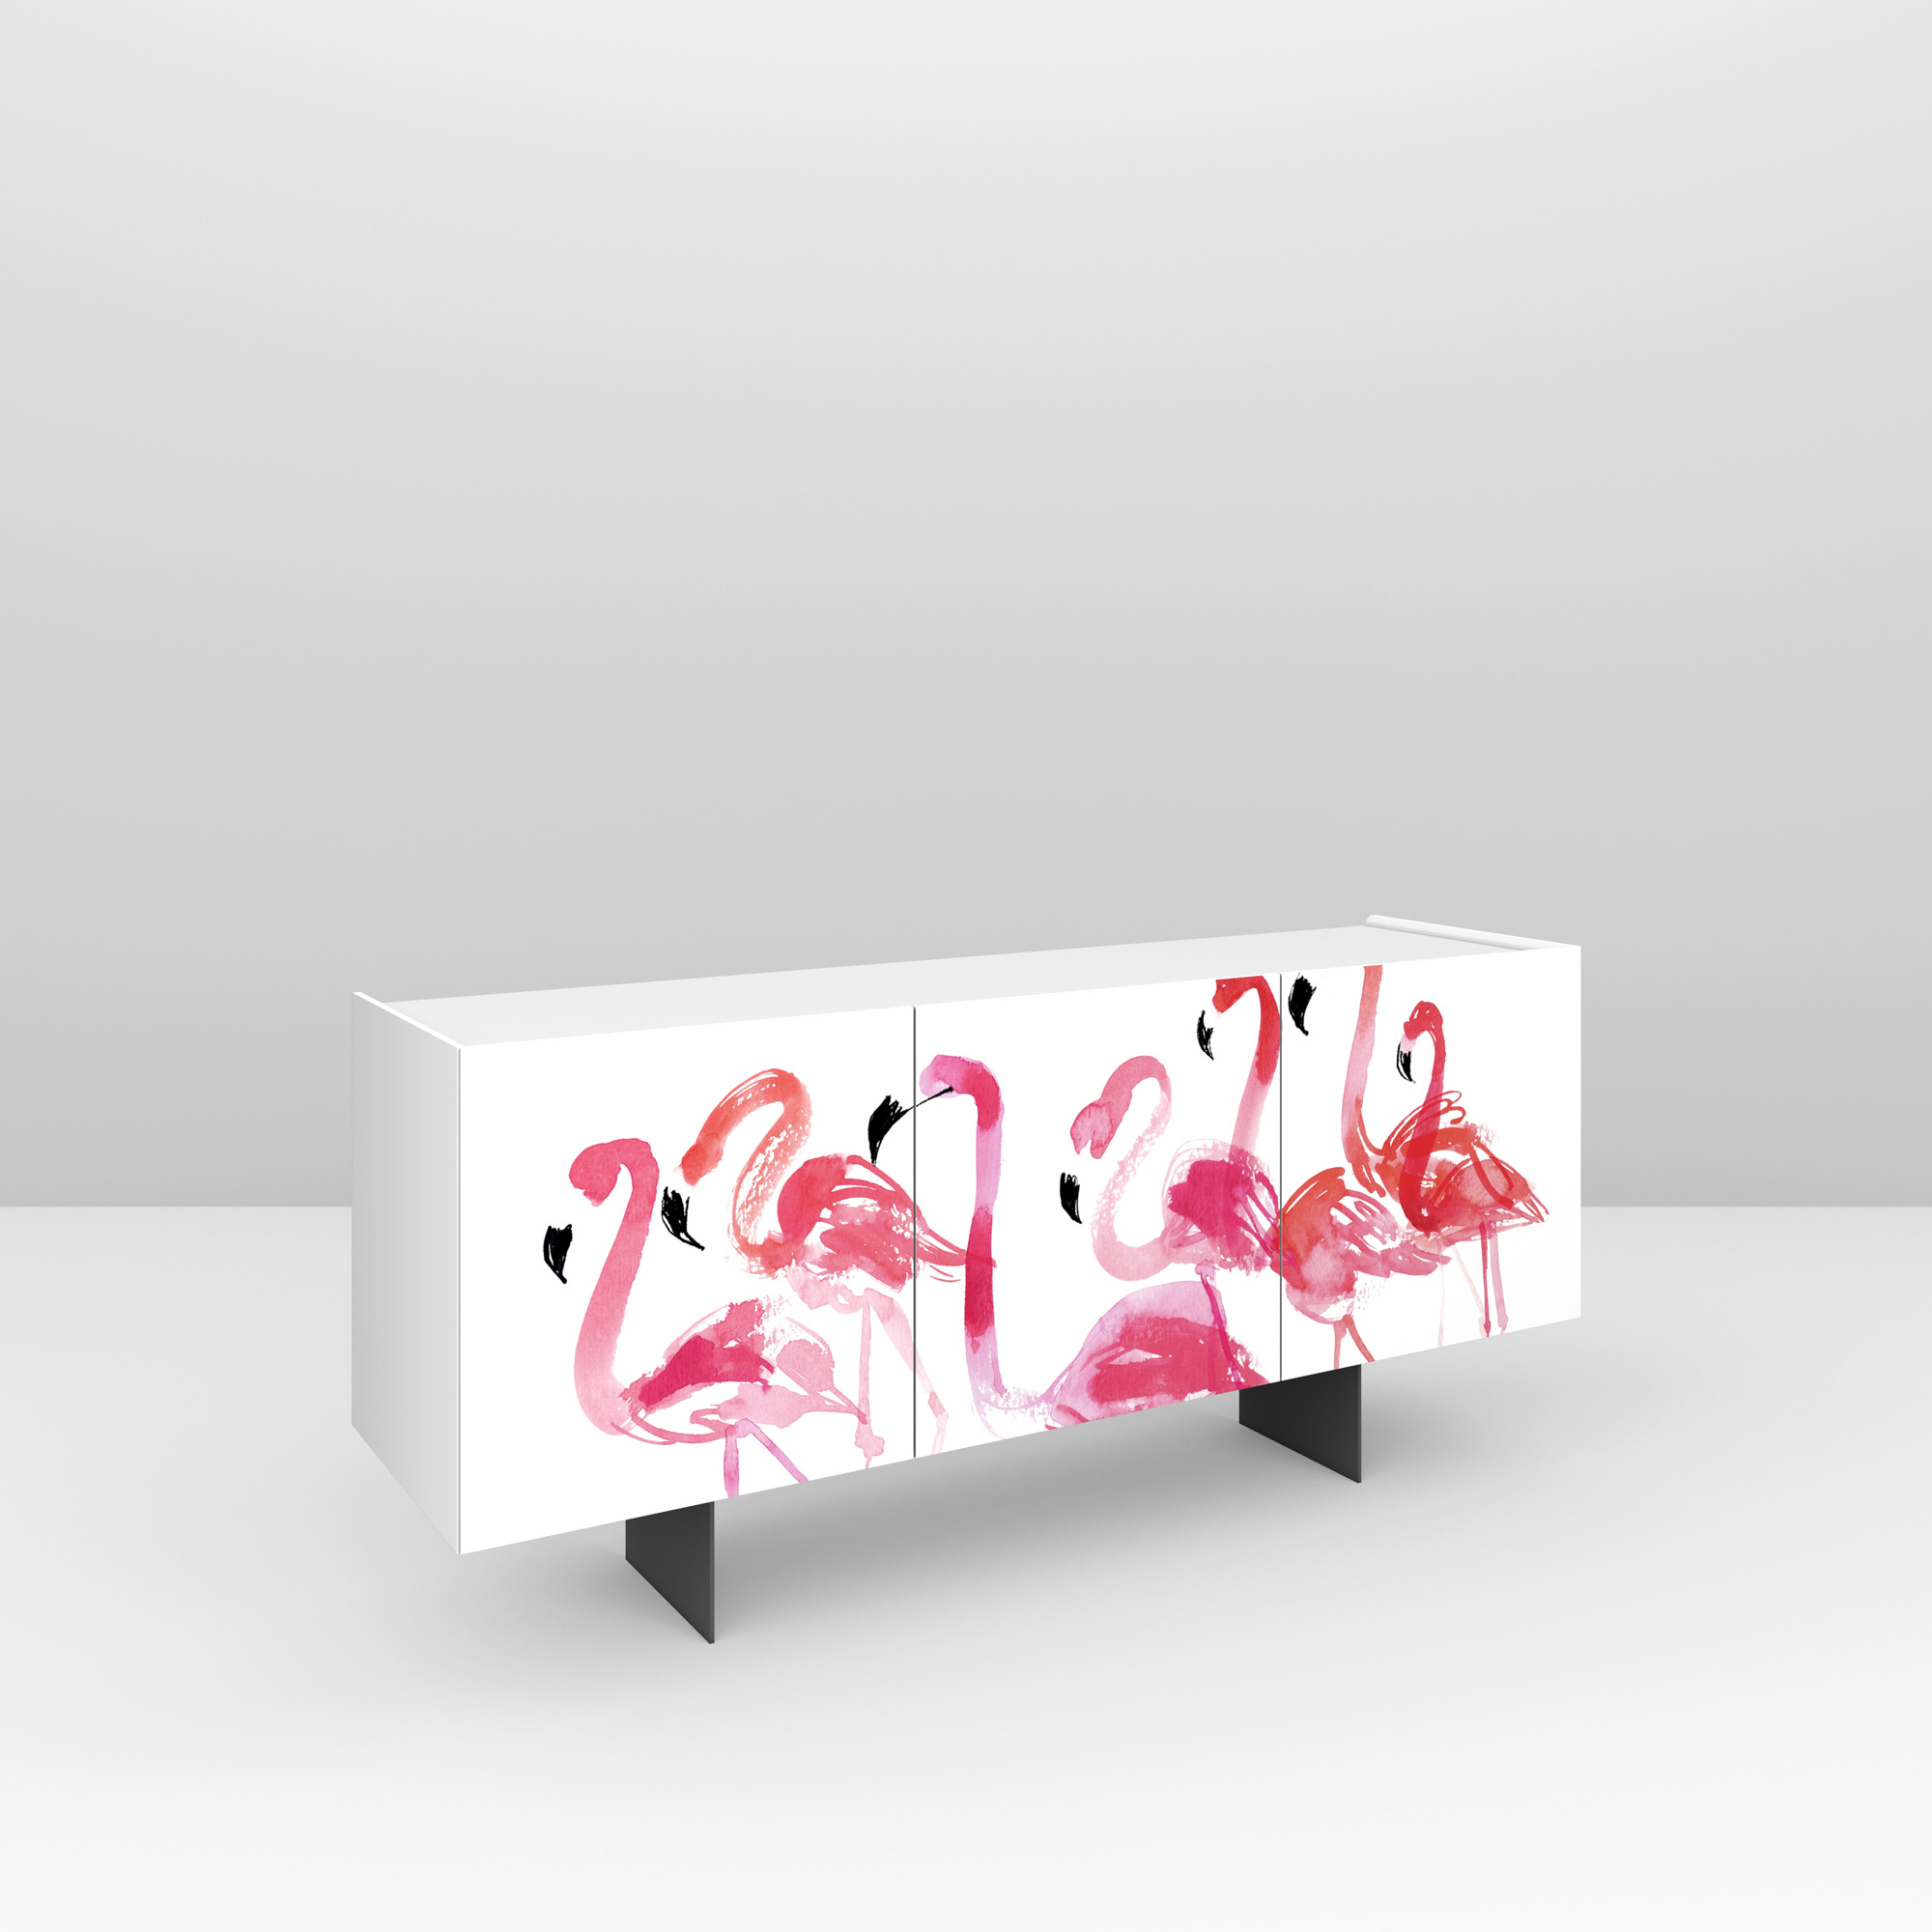 Pictoom Furniture Art Marogna Graphic Illustrator Furnishings Cinzia Zenocchini